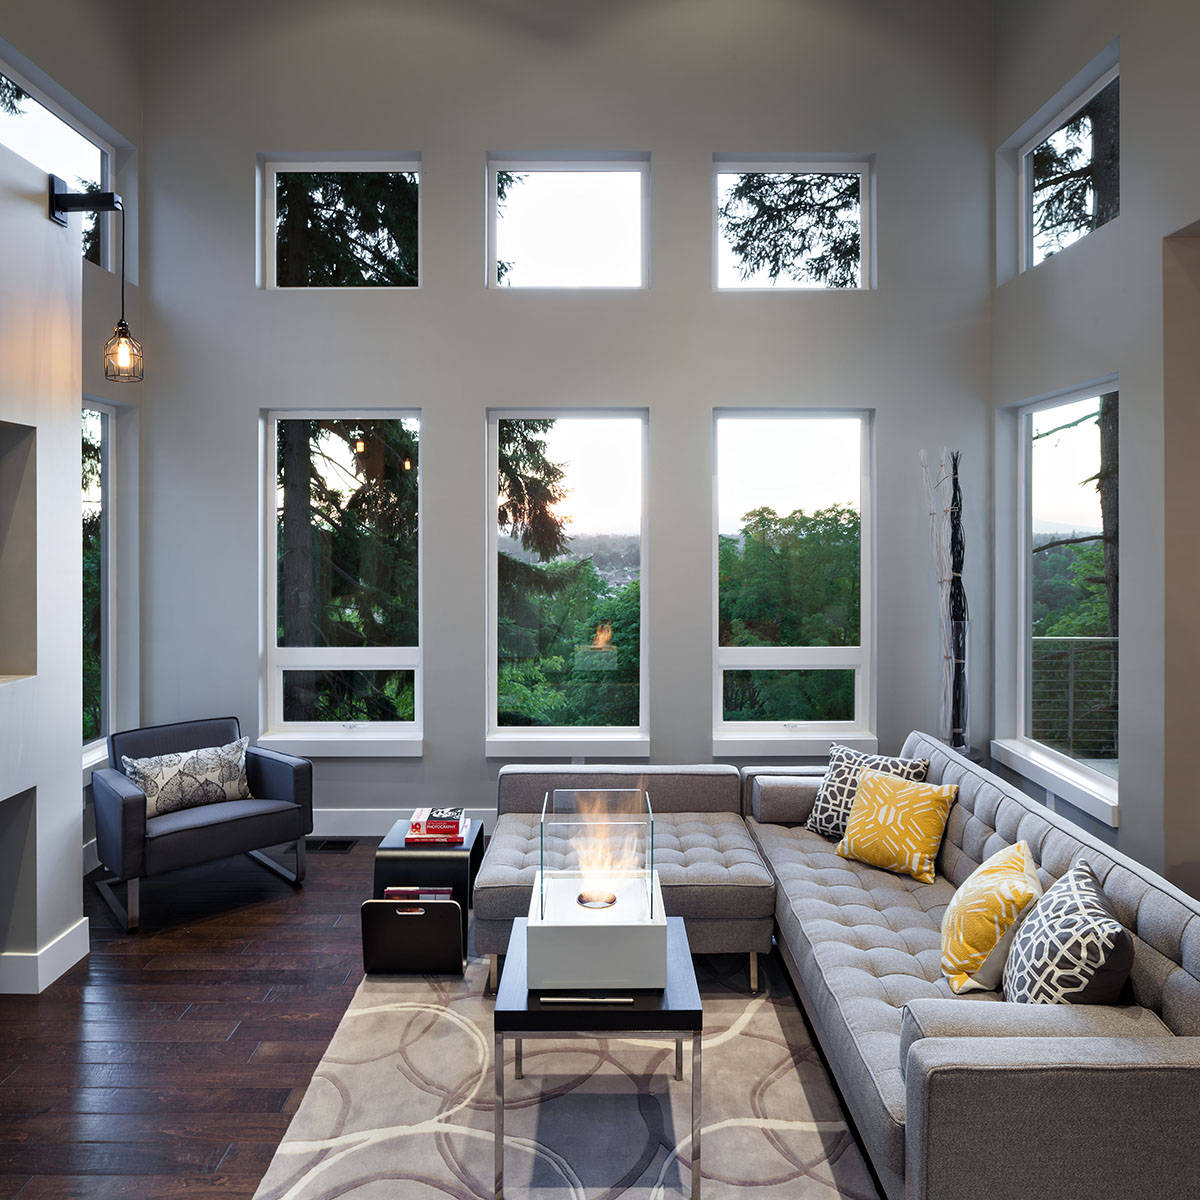 8X8 Family Room Ideas & Photos  Houzz